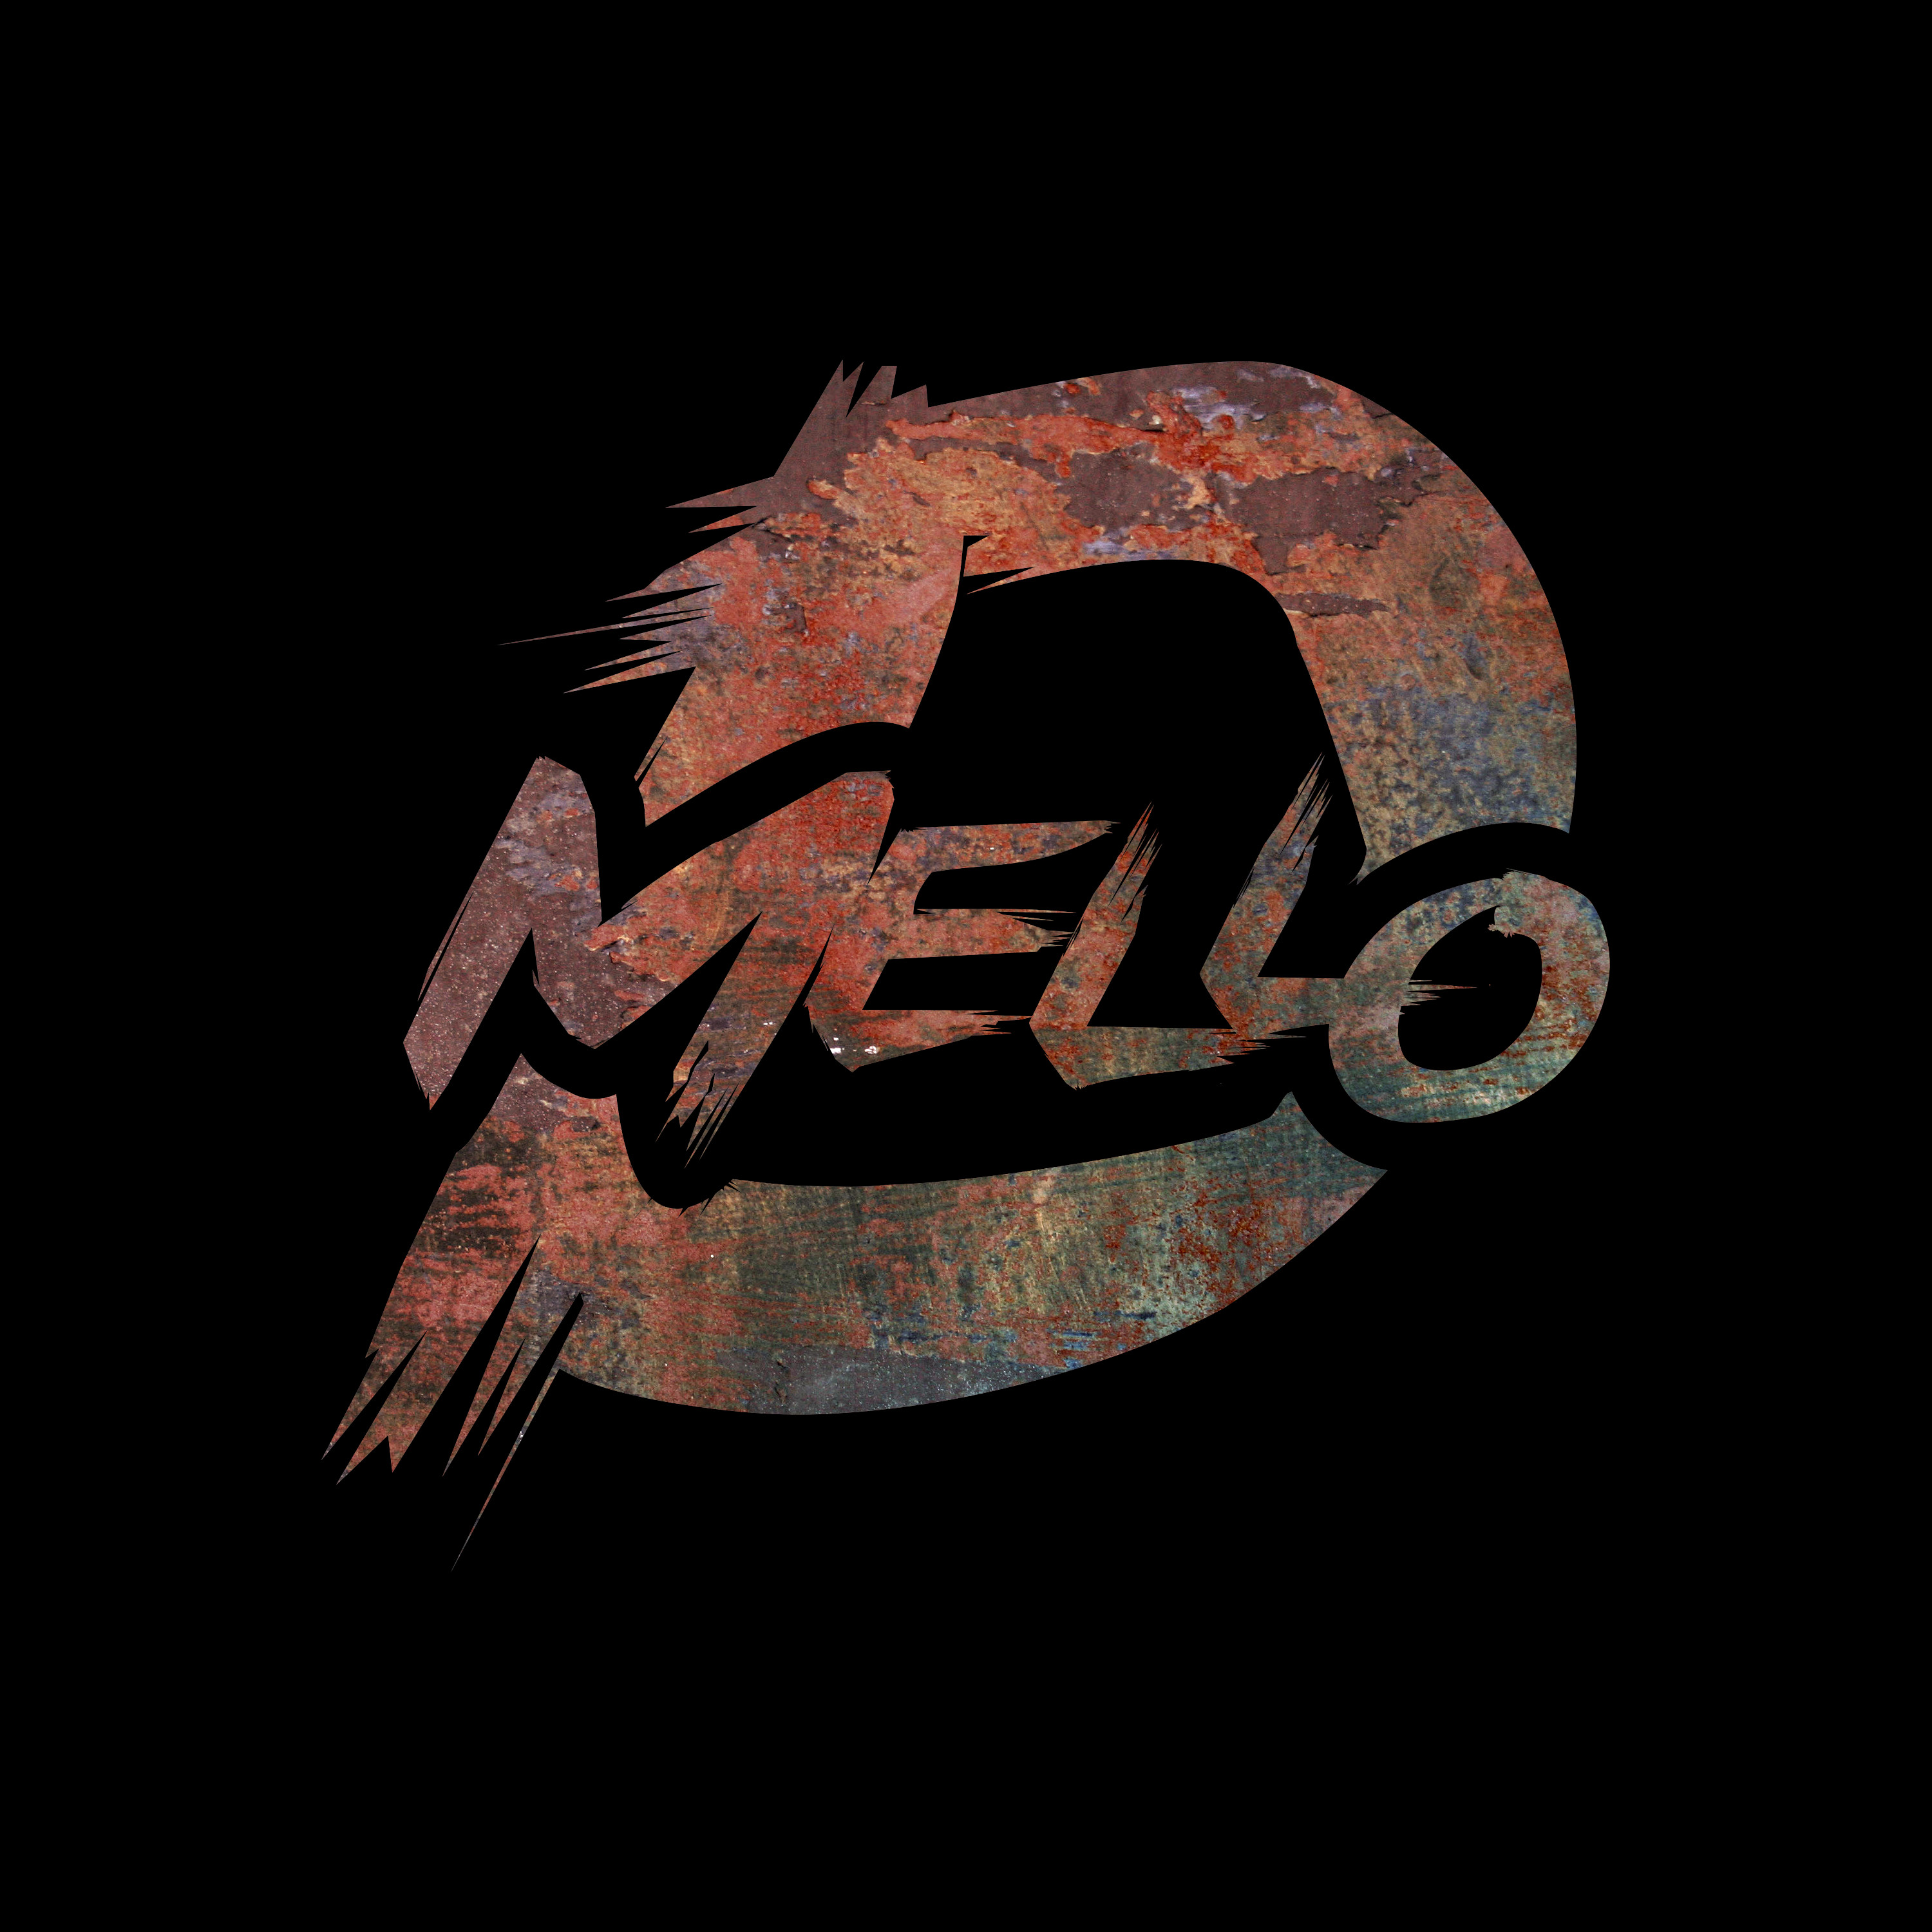 mello-d-logo-design-servant-productions